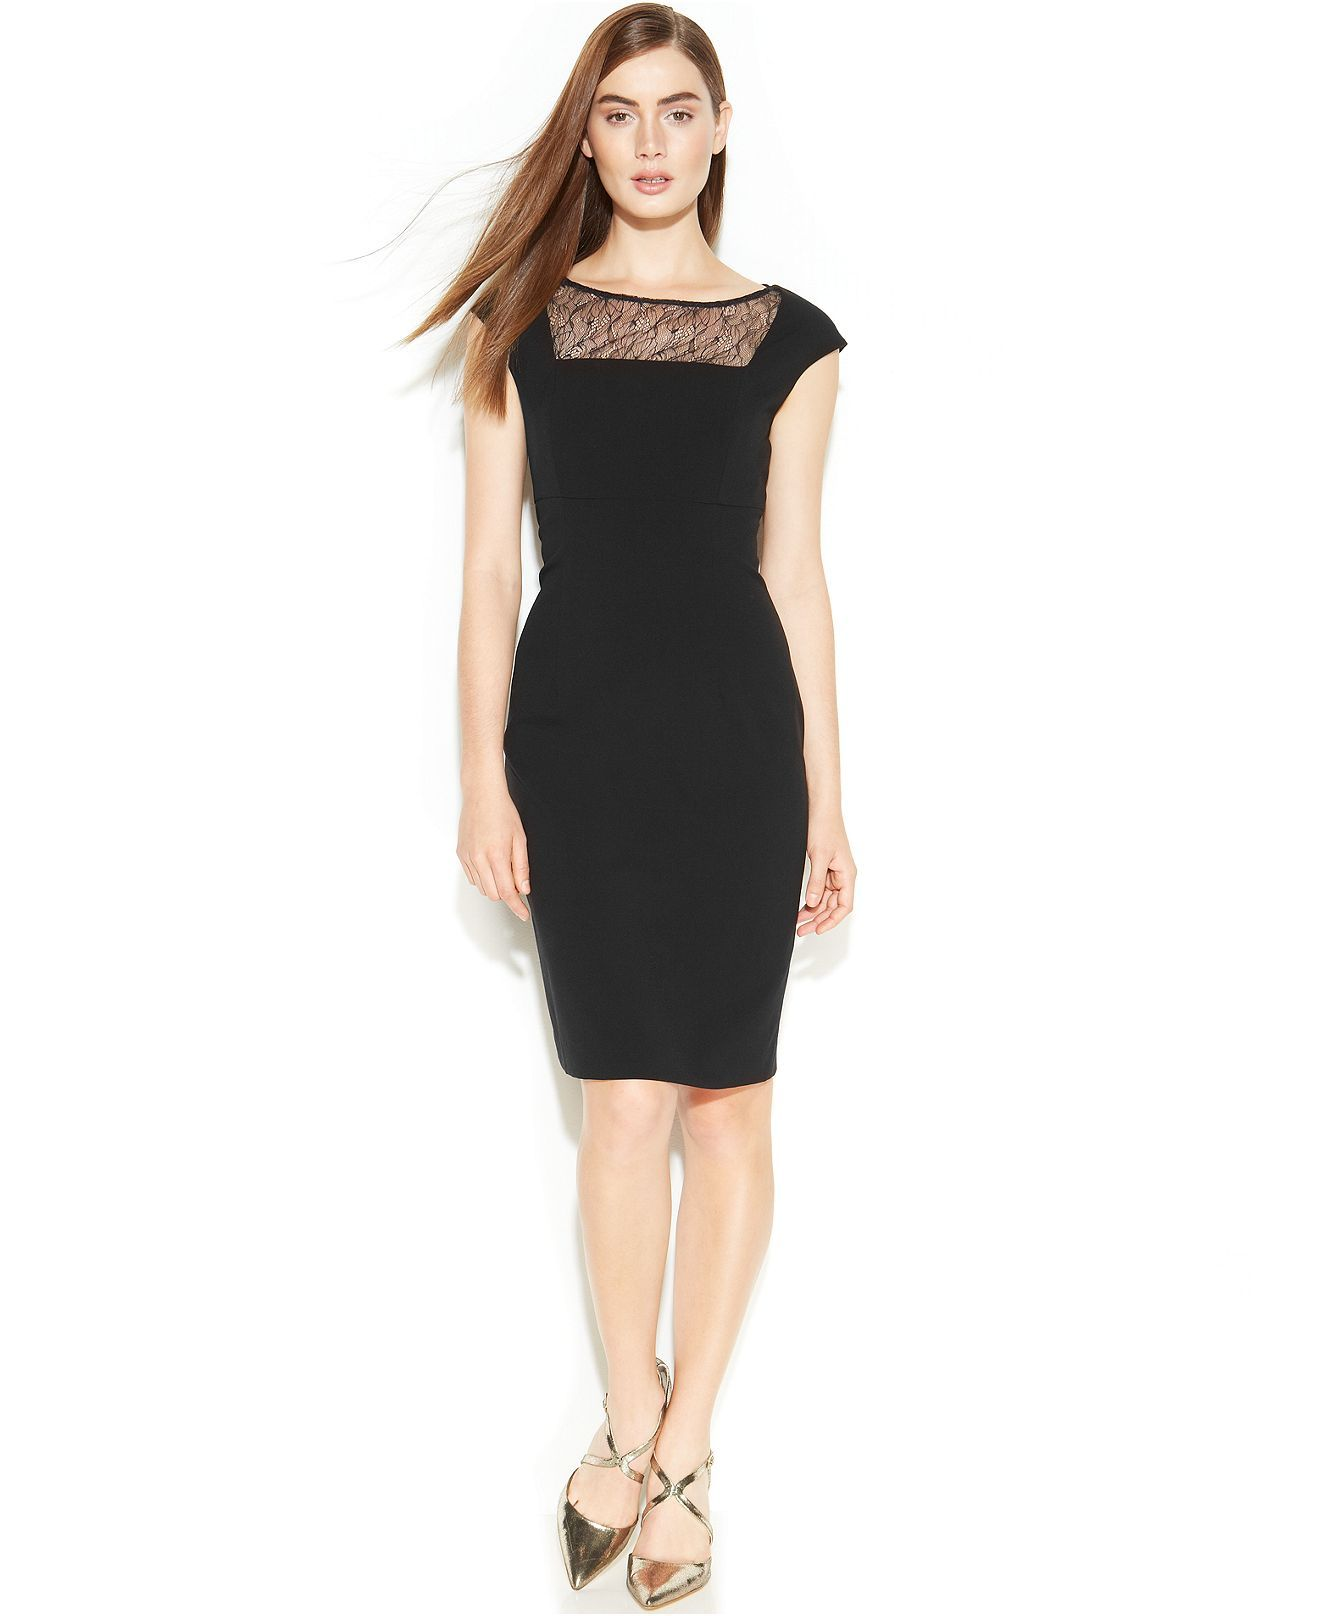 d666a3a6982ea Calvin Klein Cap-Sleeve Illusion Lace Sheath - Dresses - Women - Macy s